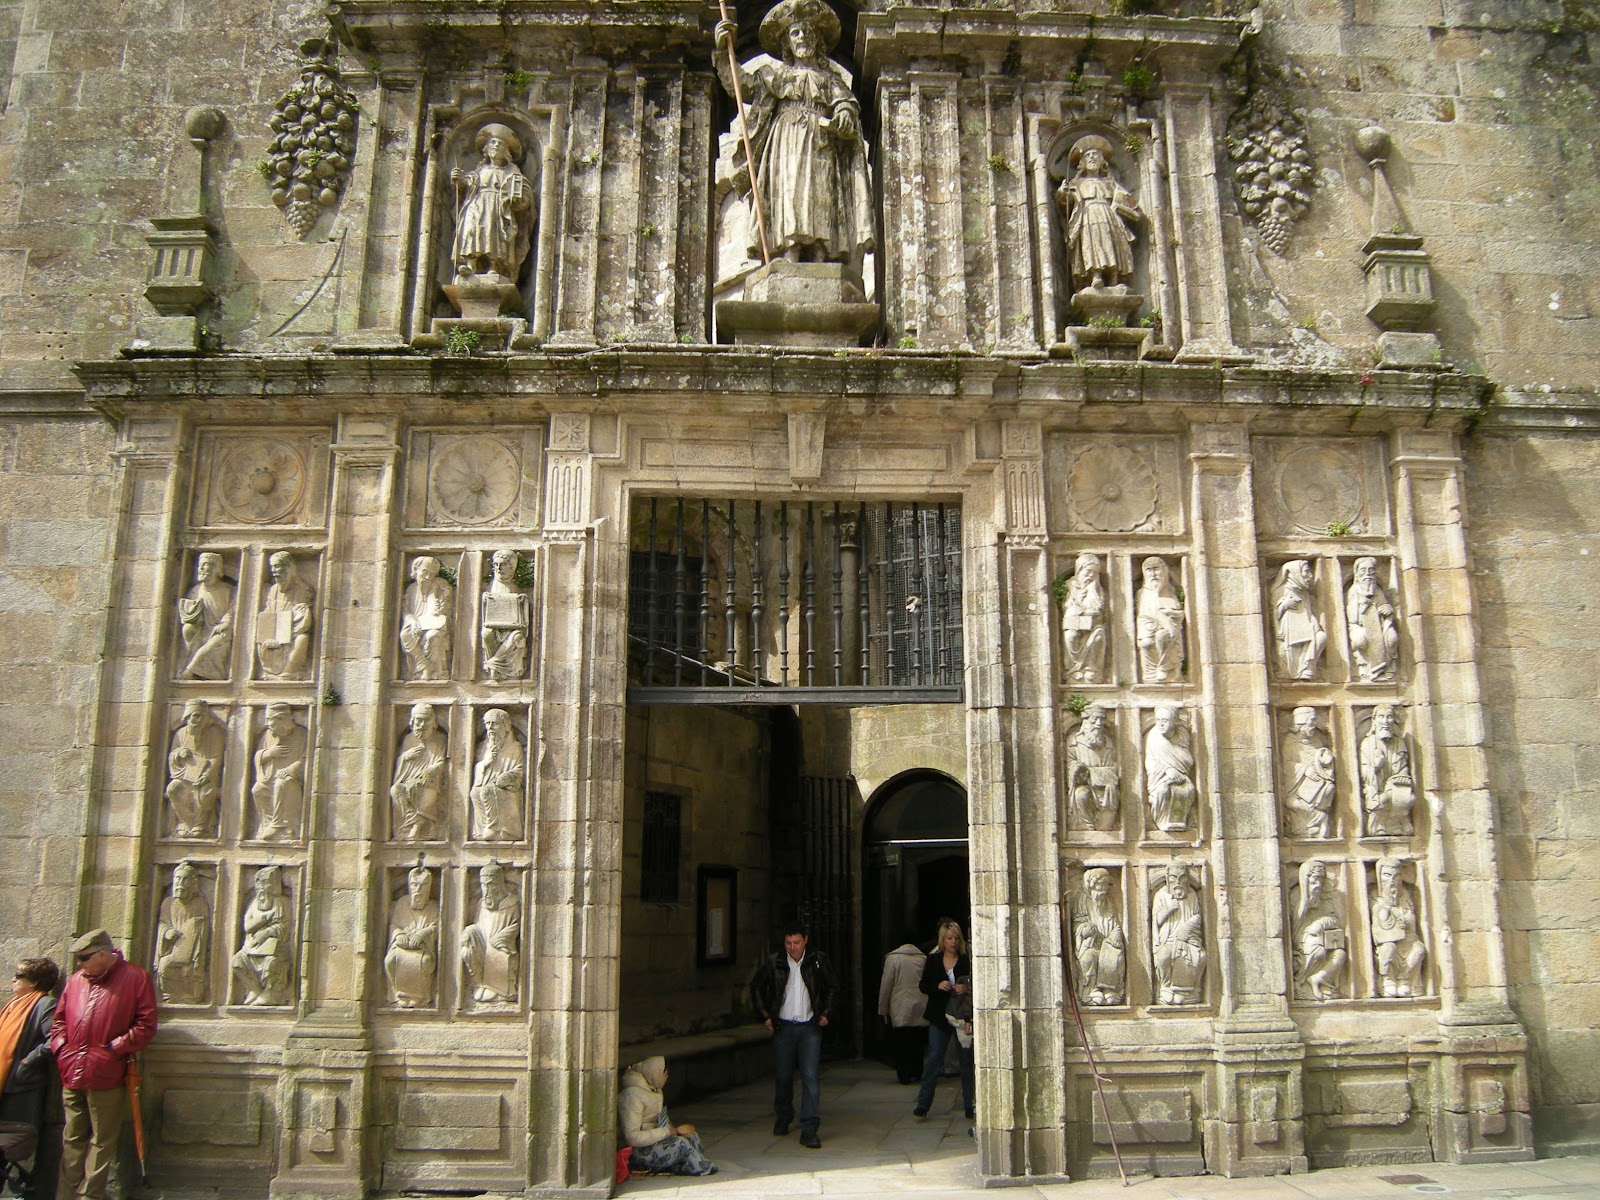 Puerta Santa or Holy Door is only opened during Jubilee Years. Photo: © José Antonio Gil Martínez.